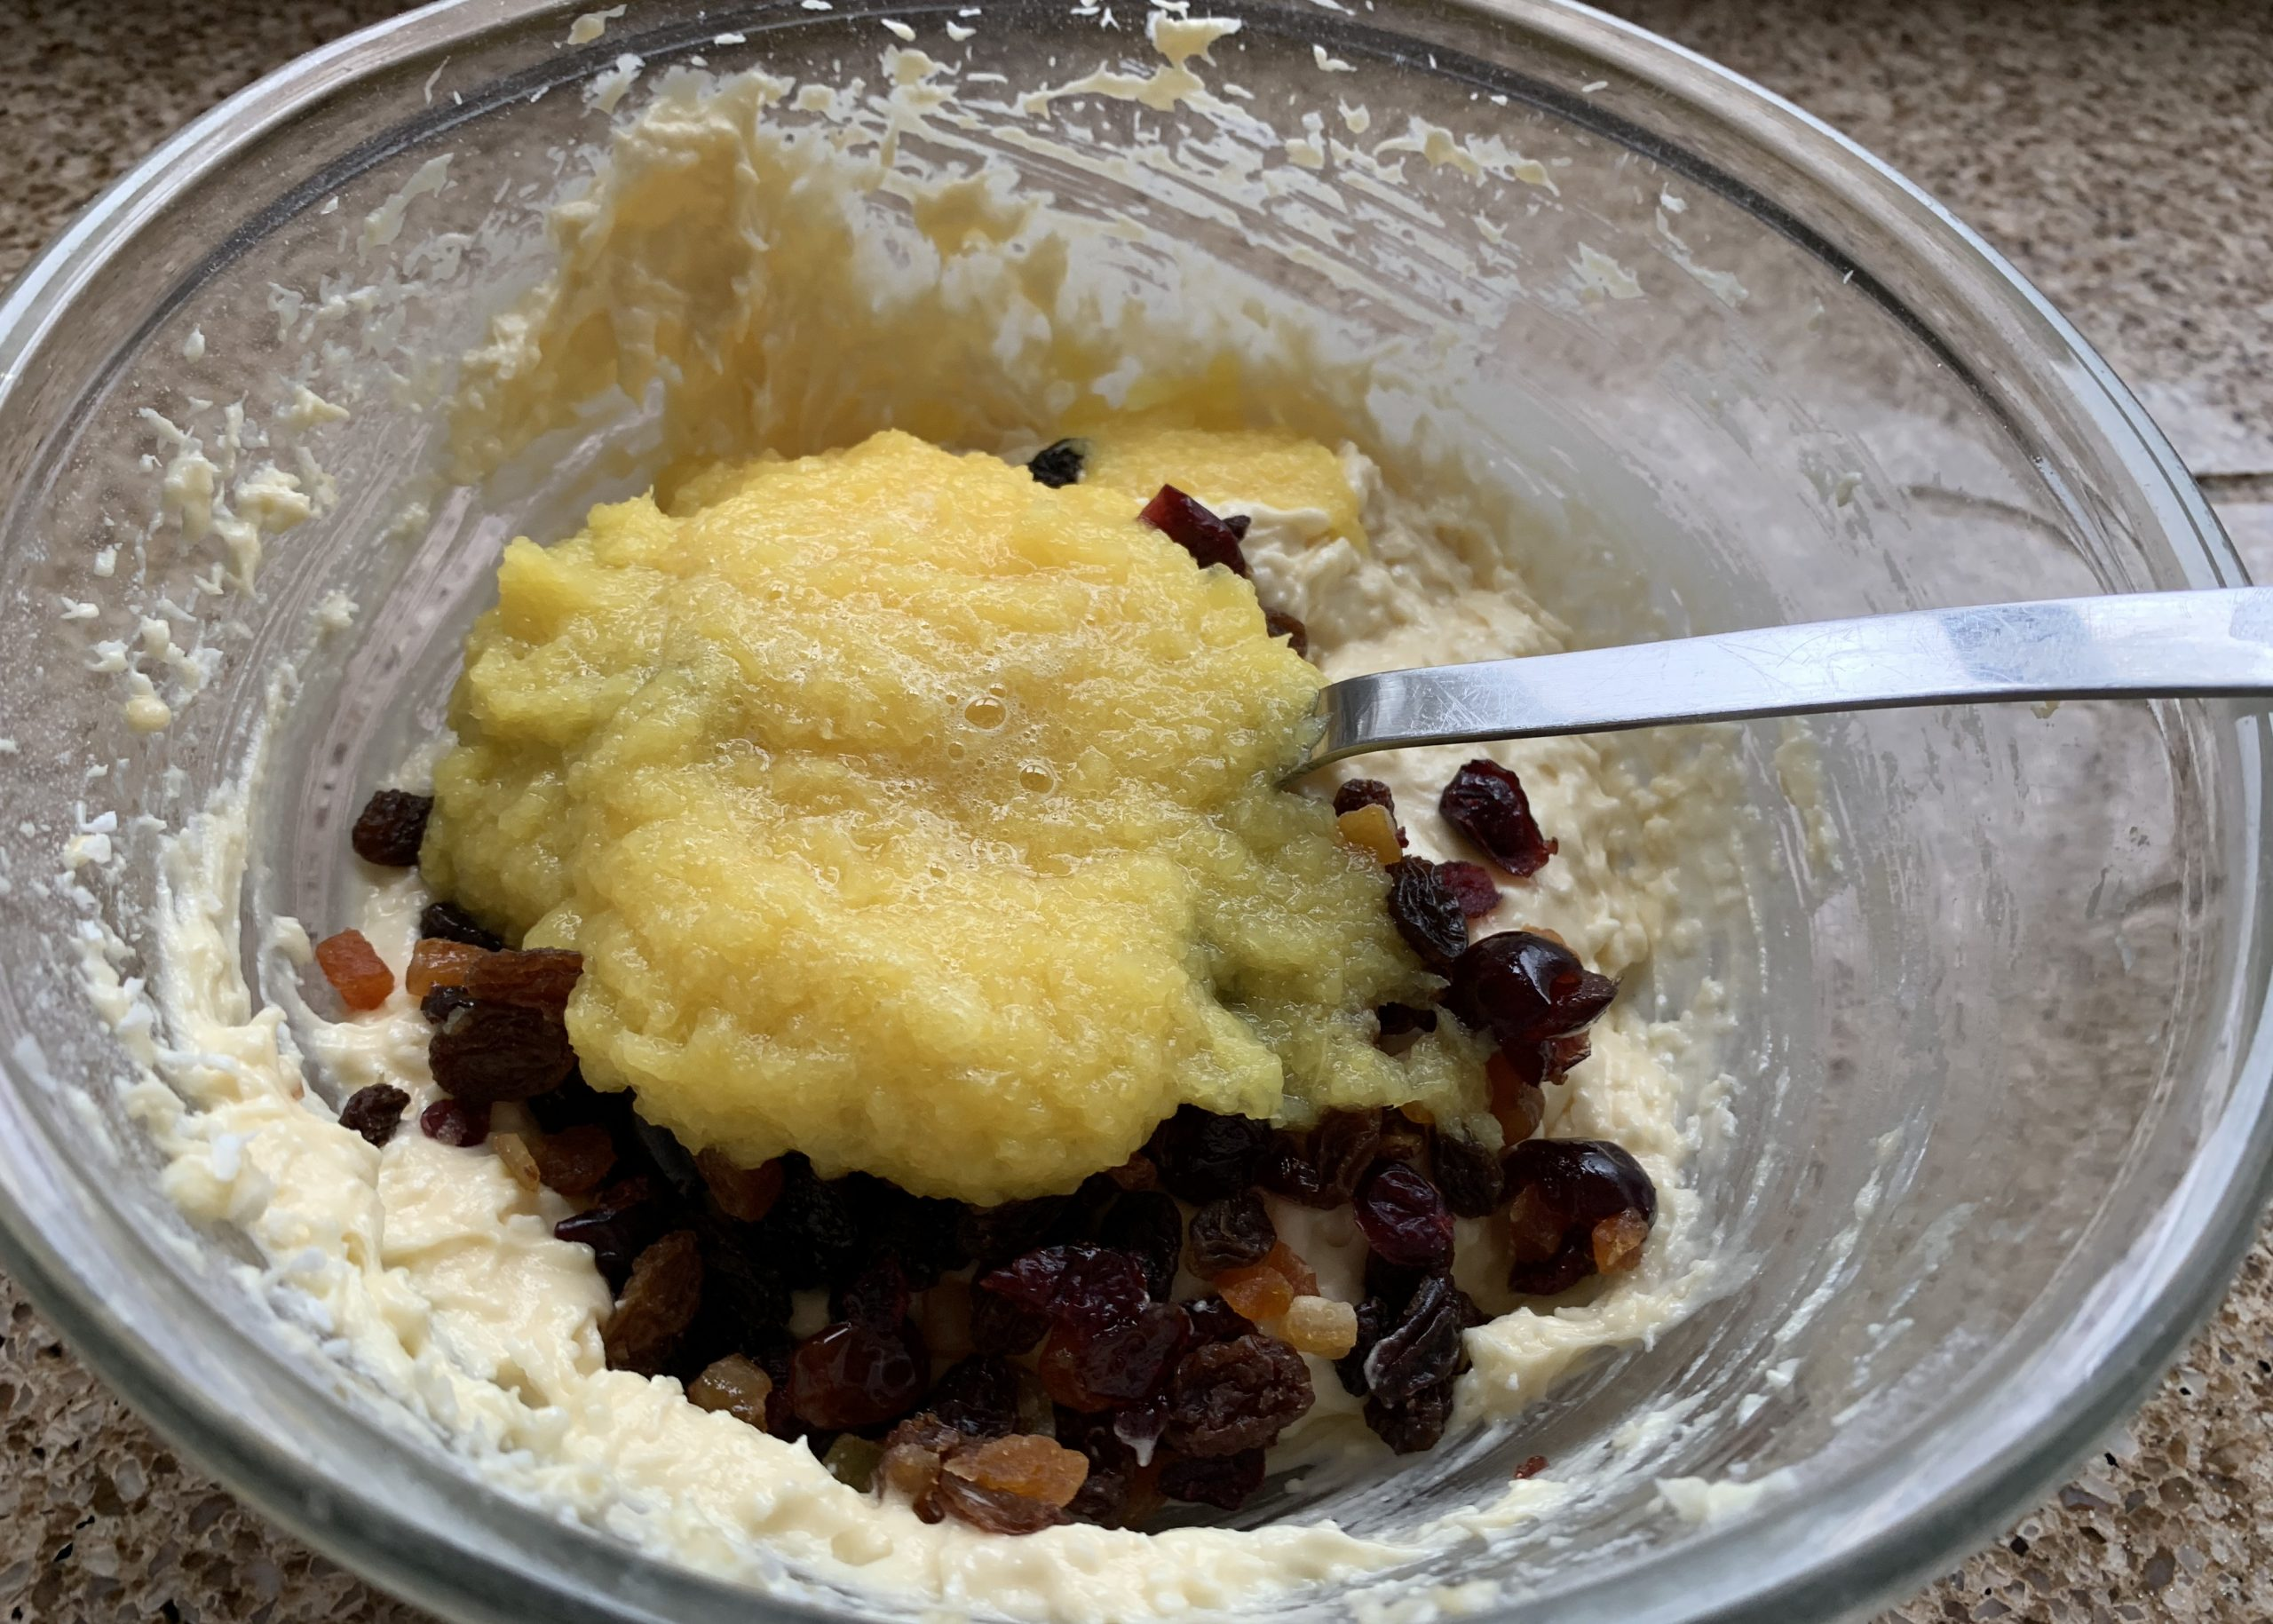 Cake mixture for pineapple, coconut and fruit loaf